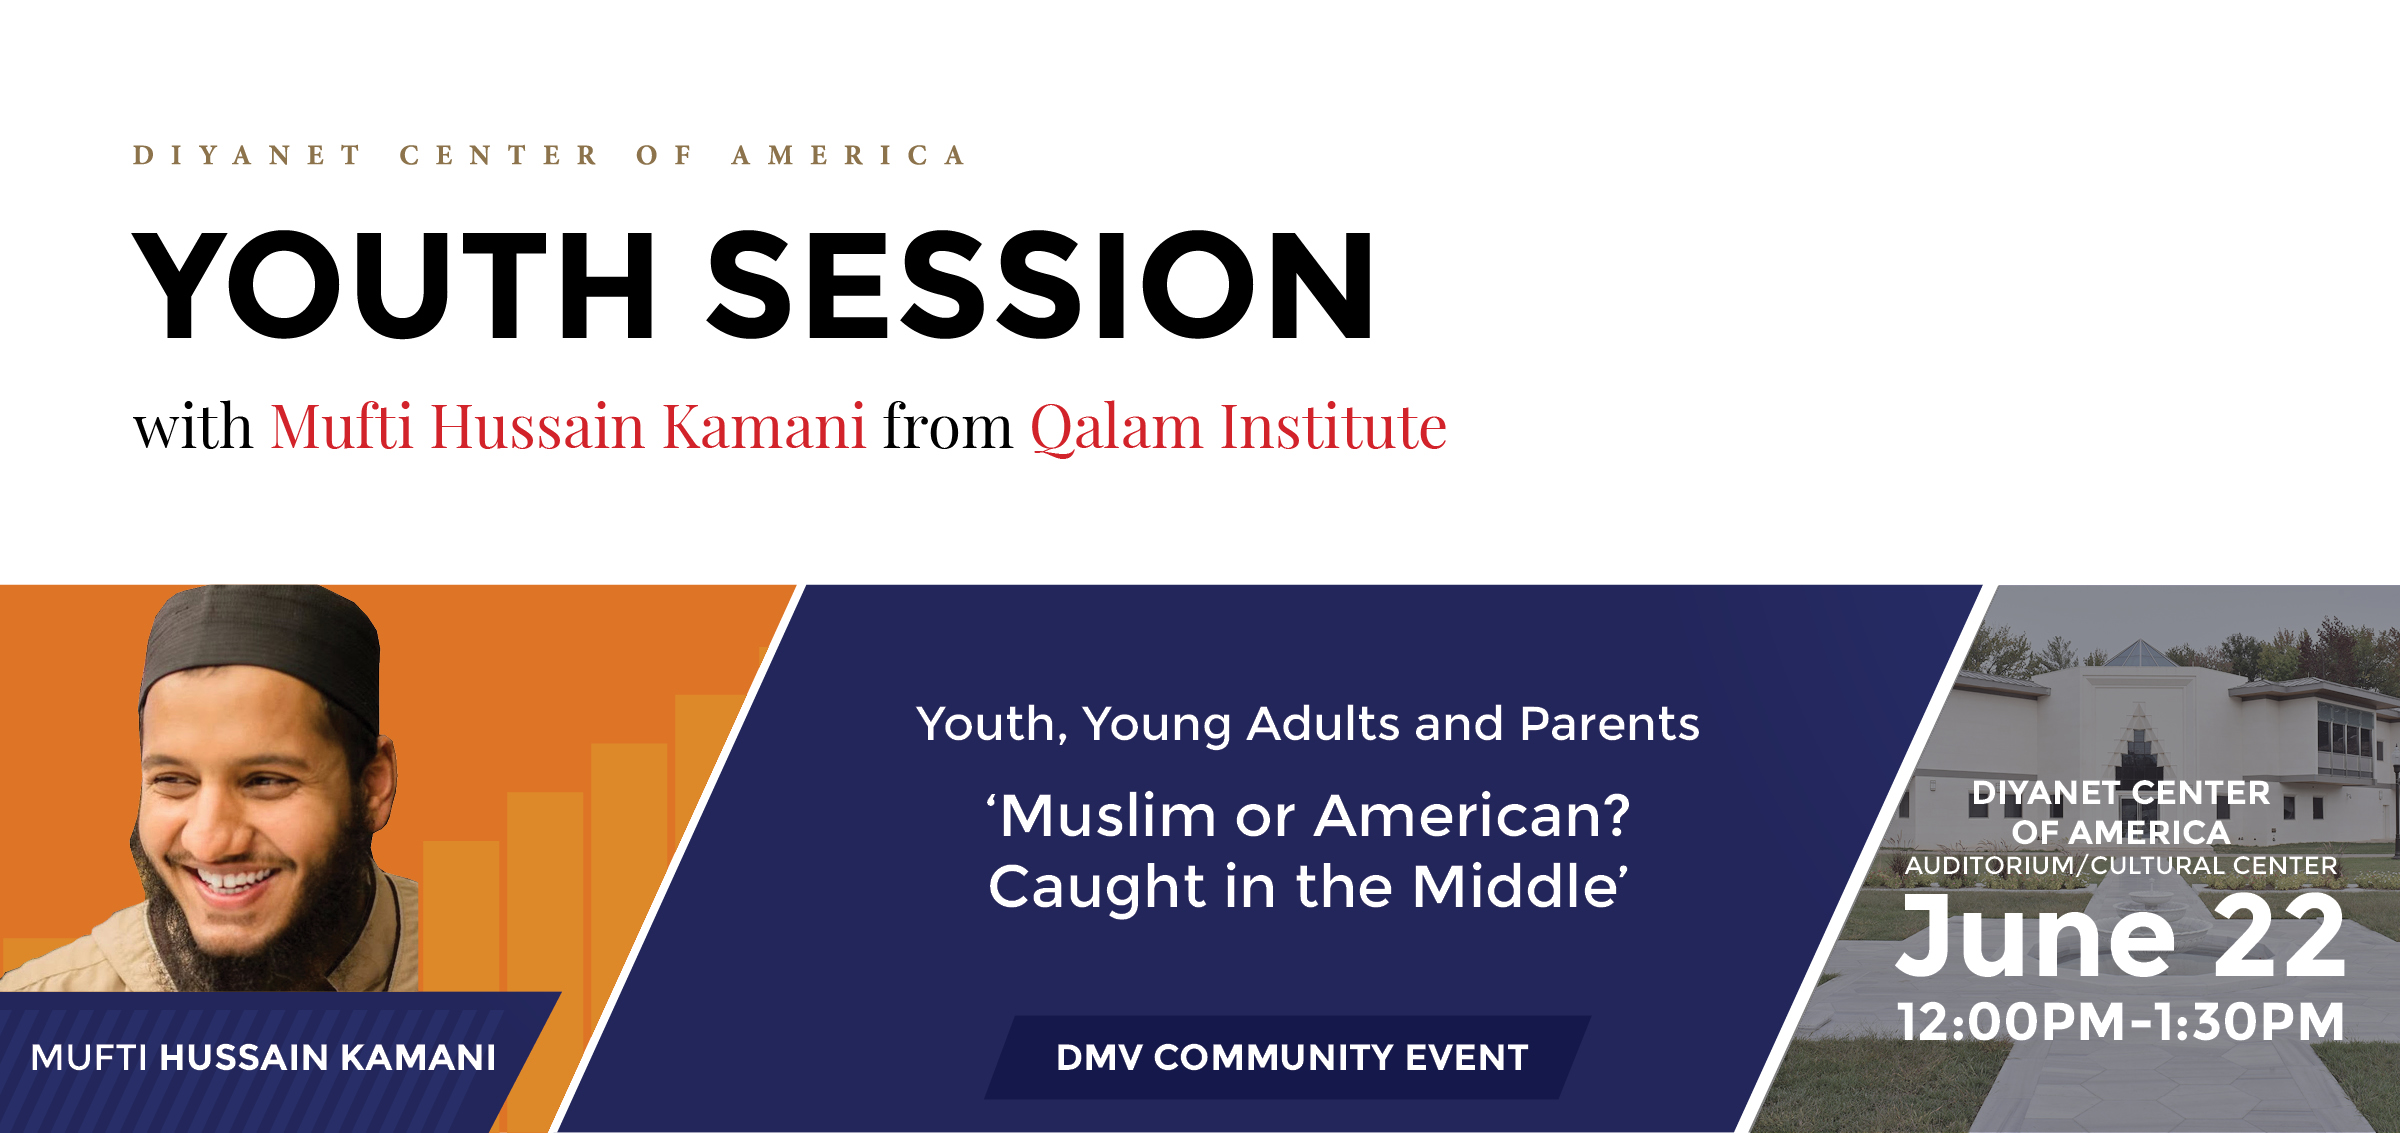 'Muslim or American? Caught in the Middle?' Youth Session by Mufti Hussain Kamani